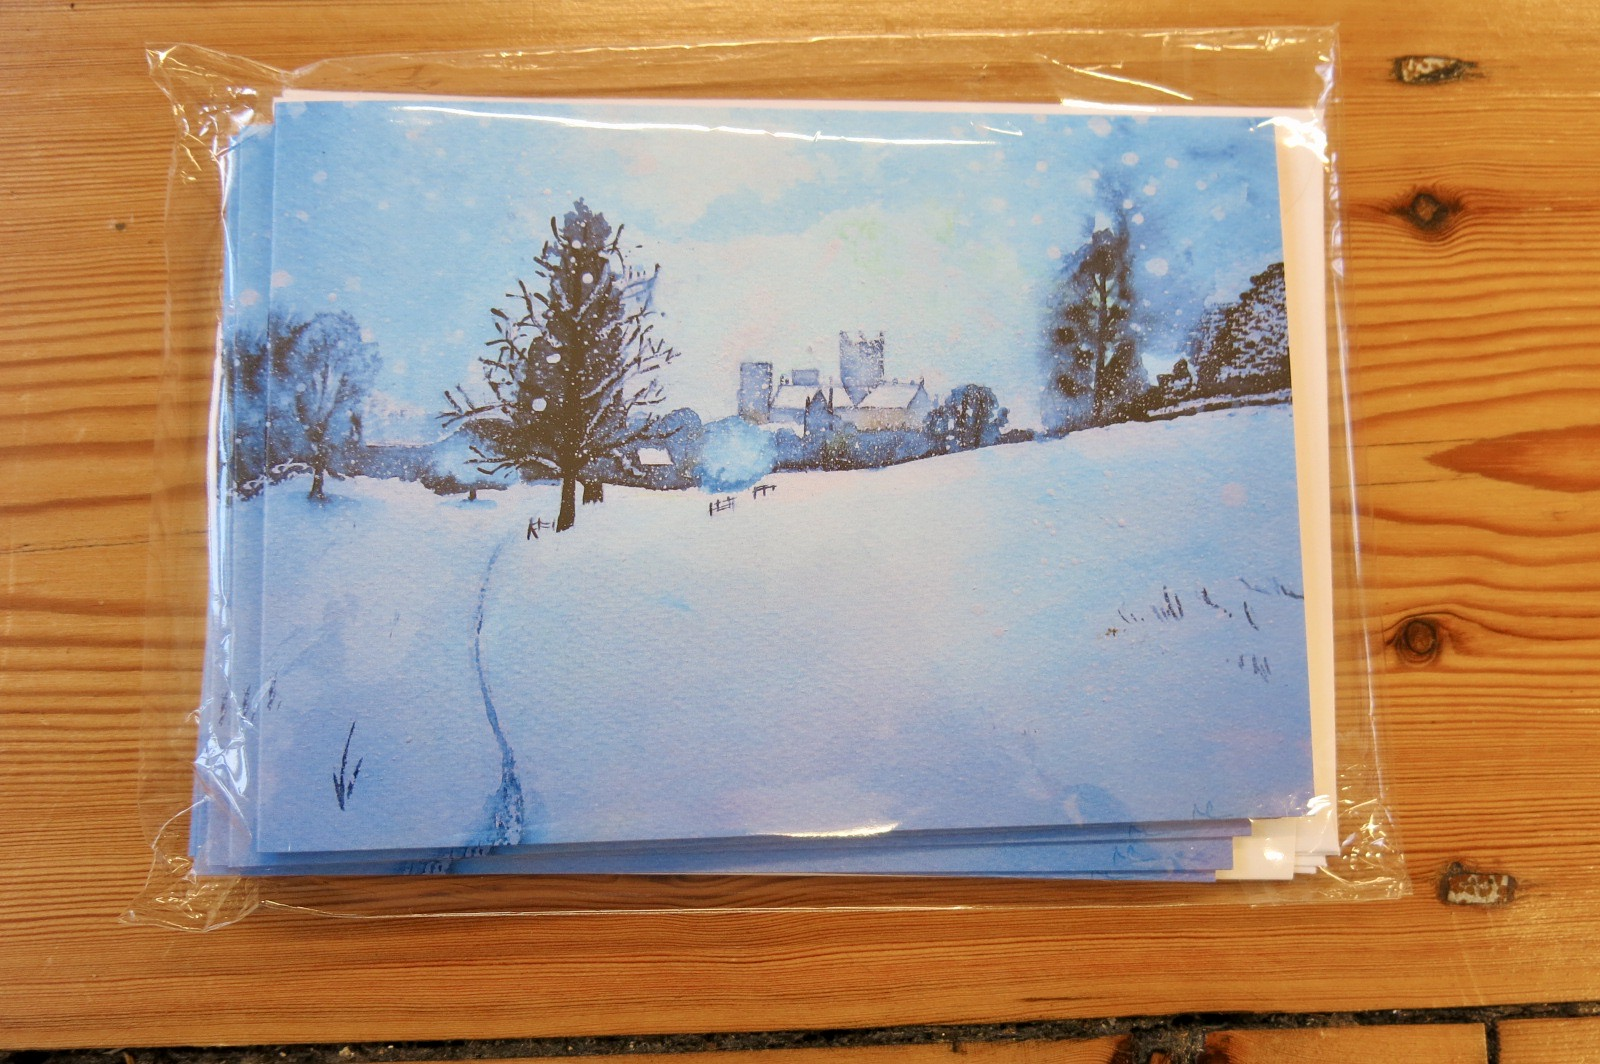 SNOWY DAY IN WELLS CARD PACK